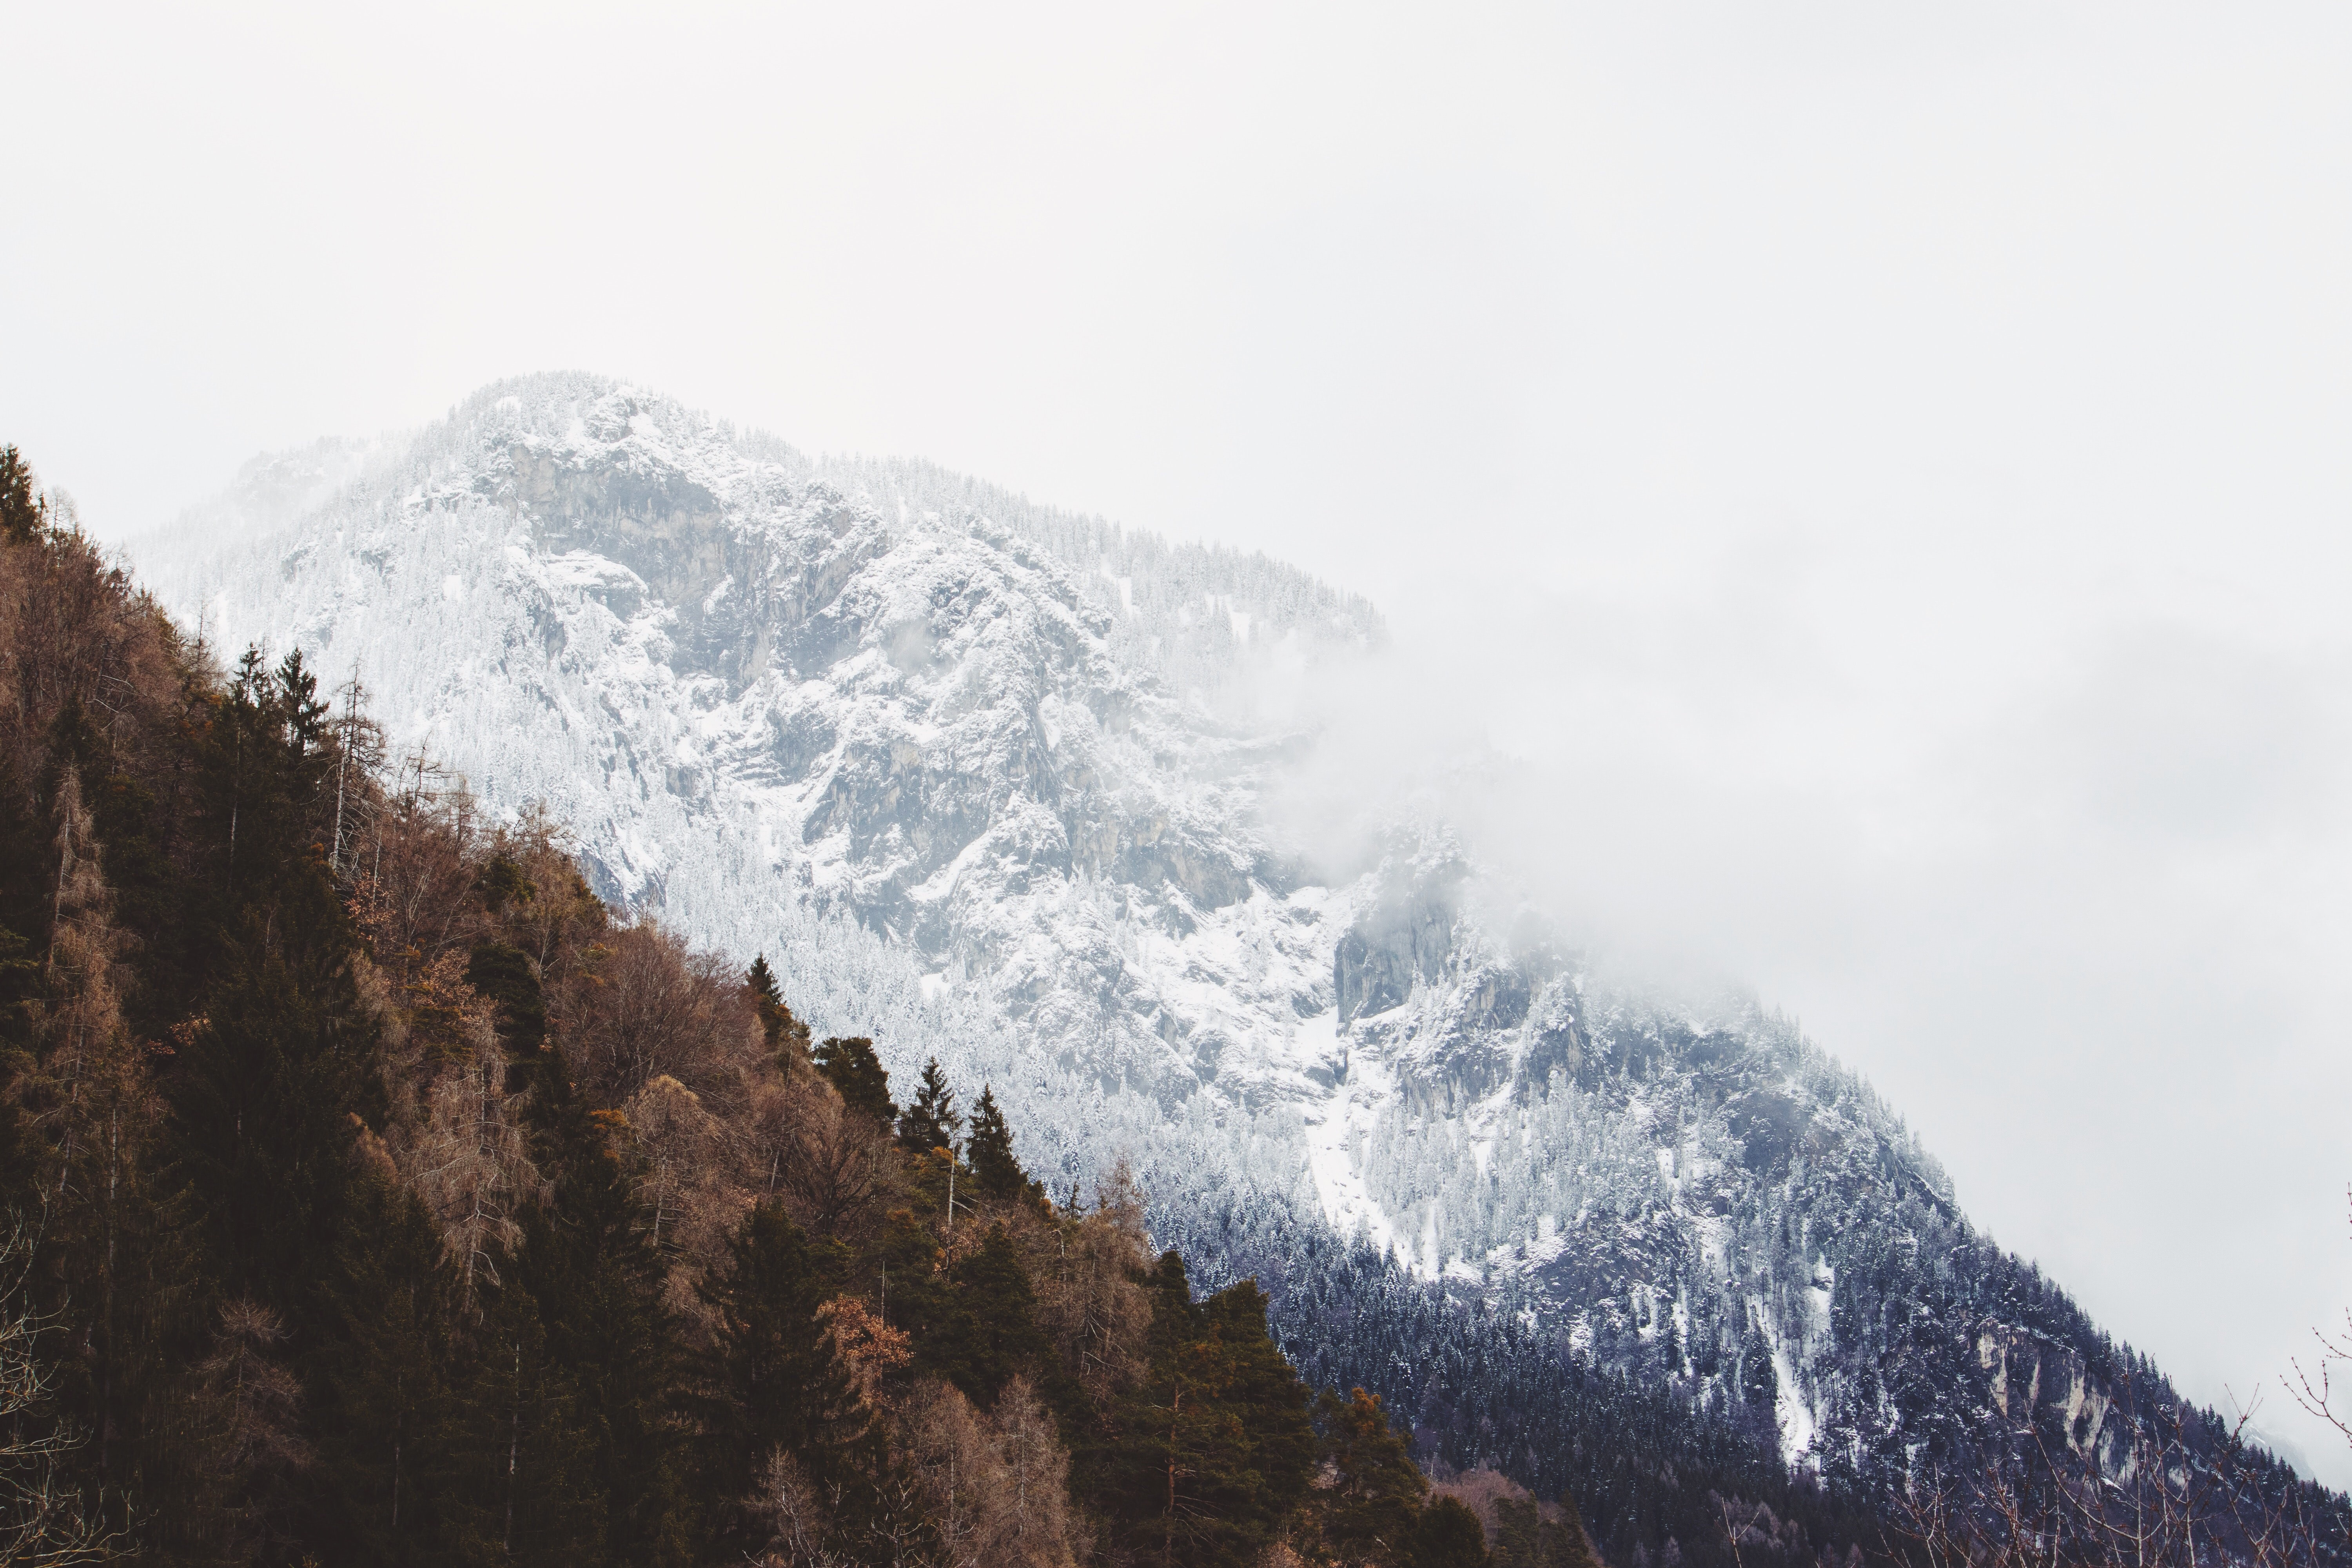 ice-capped mountain near brown trees at daytime